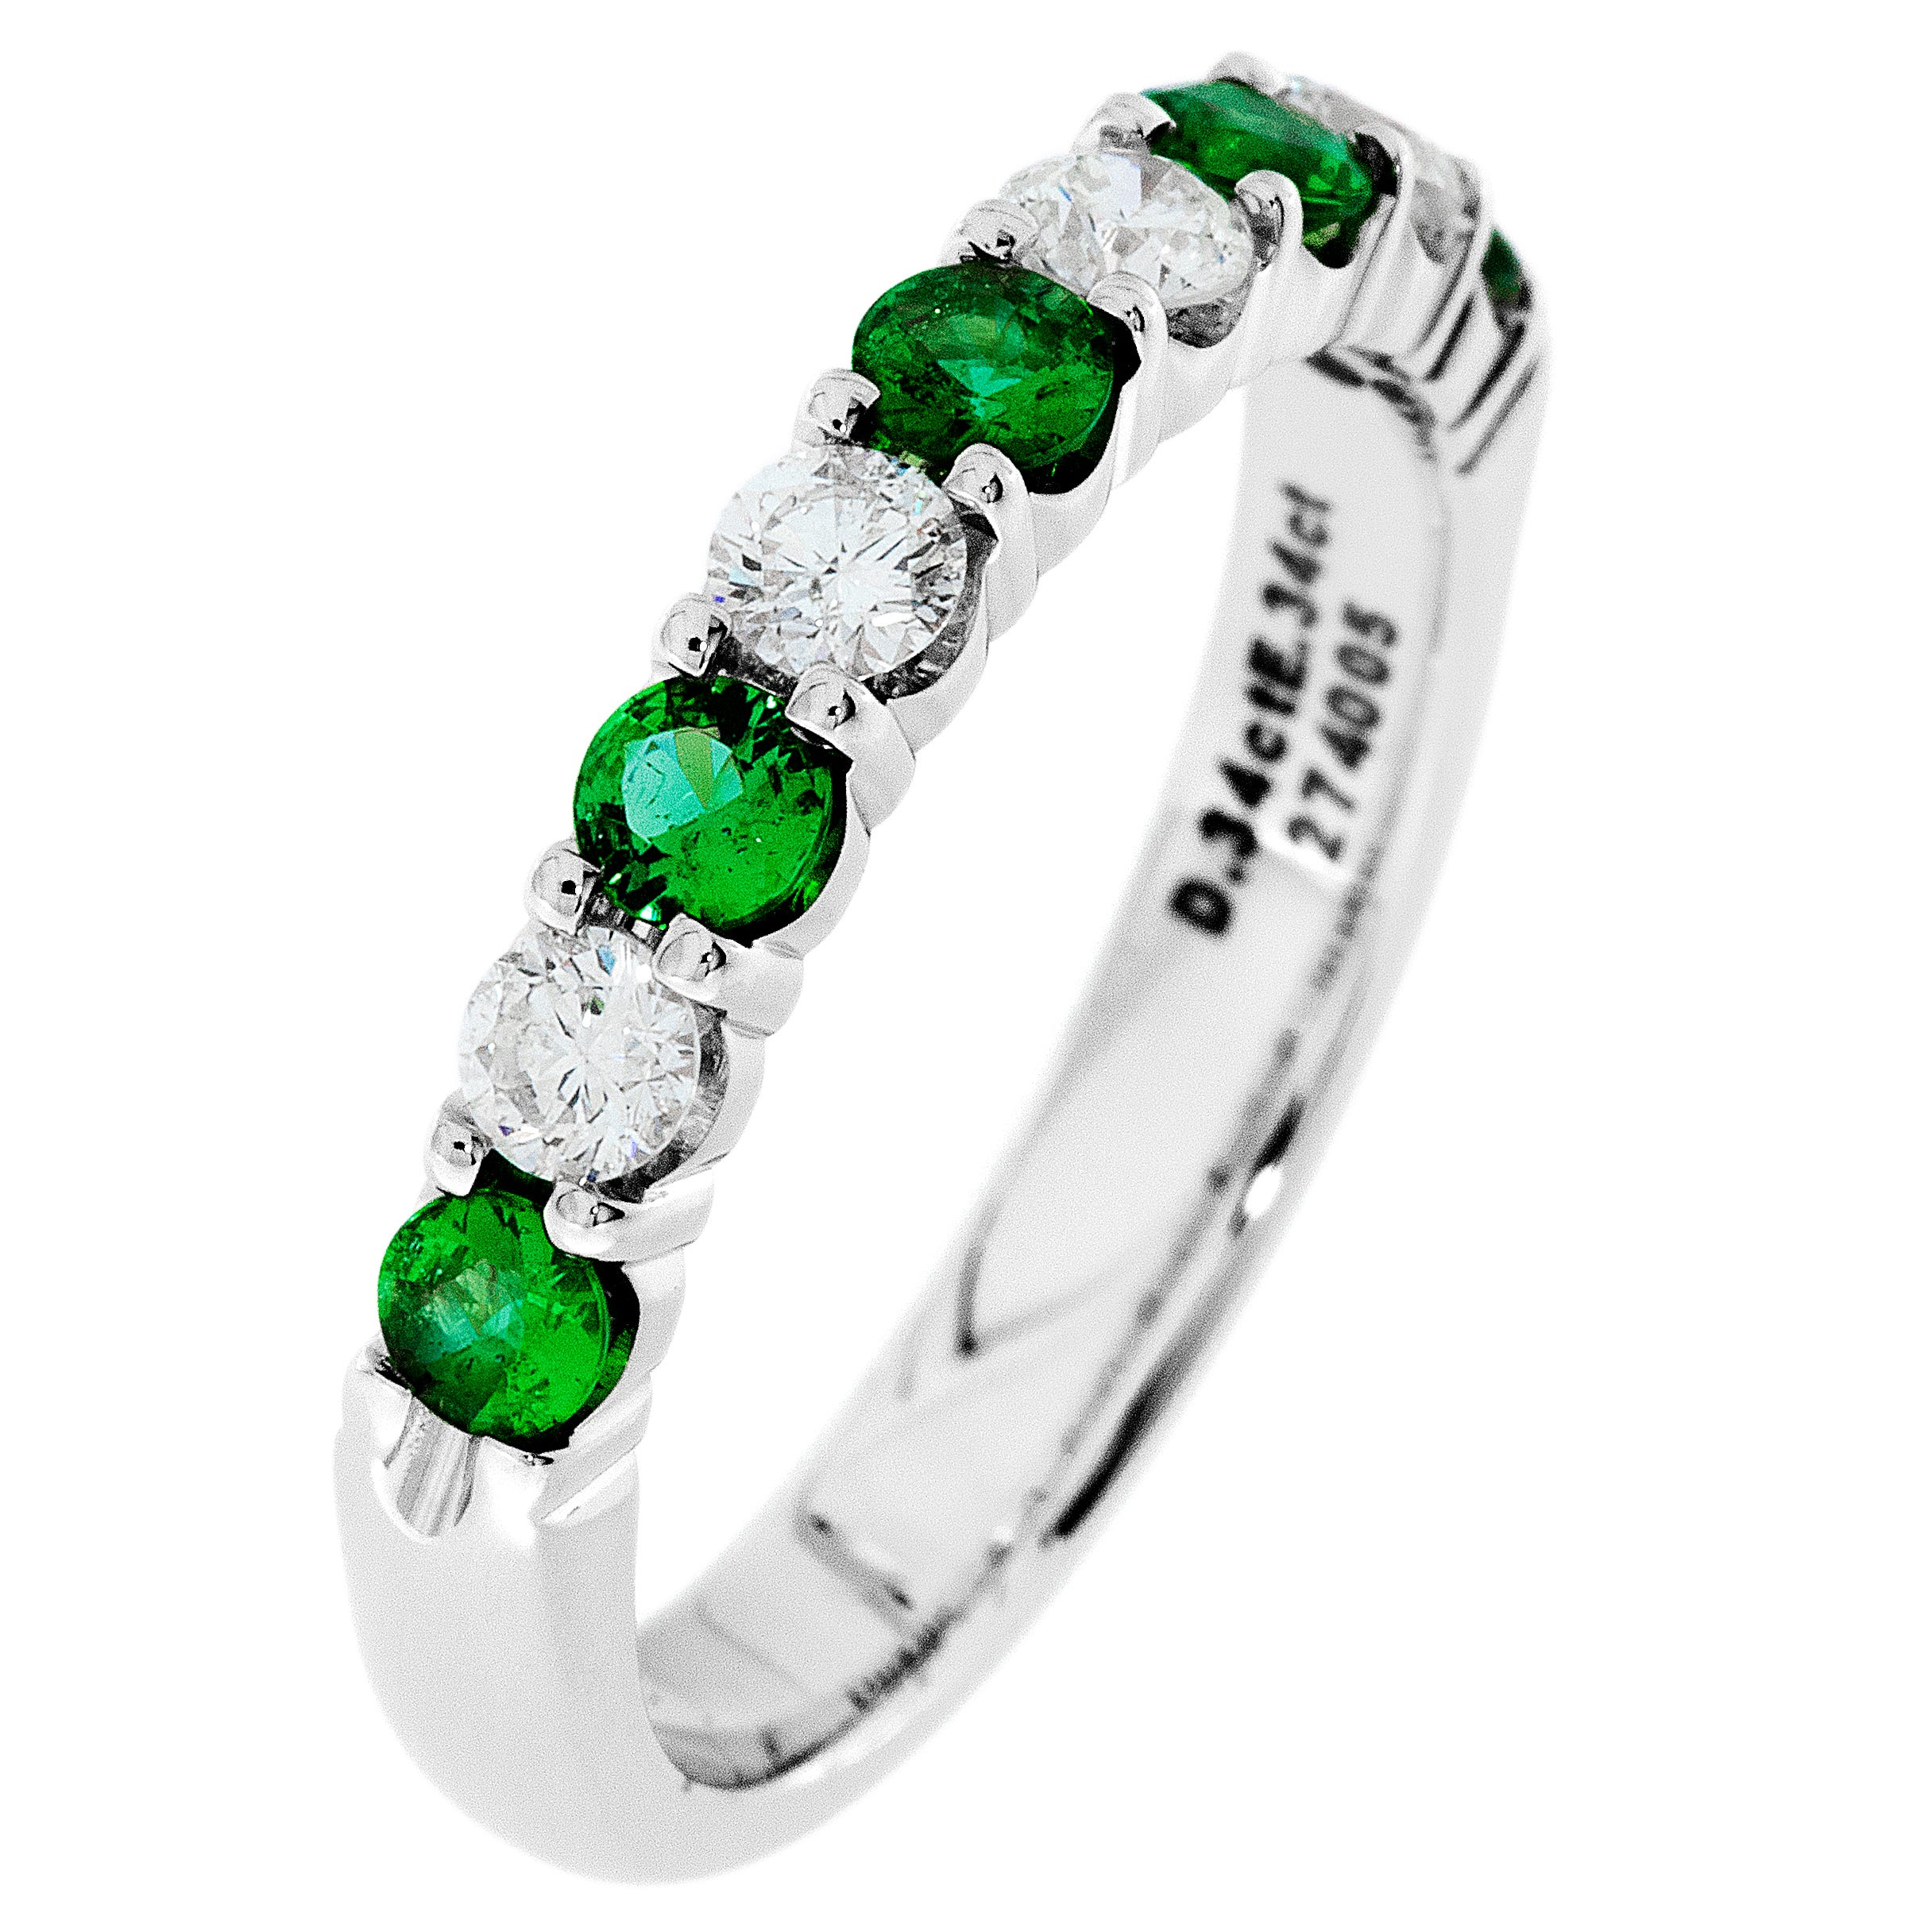 Diamond & Emerald Prong Set 0.55ctw. Band in 14k White Gold